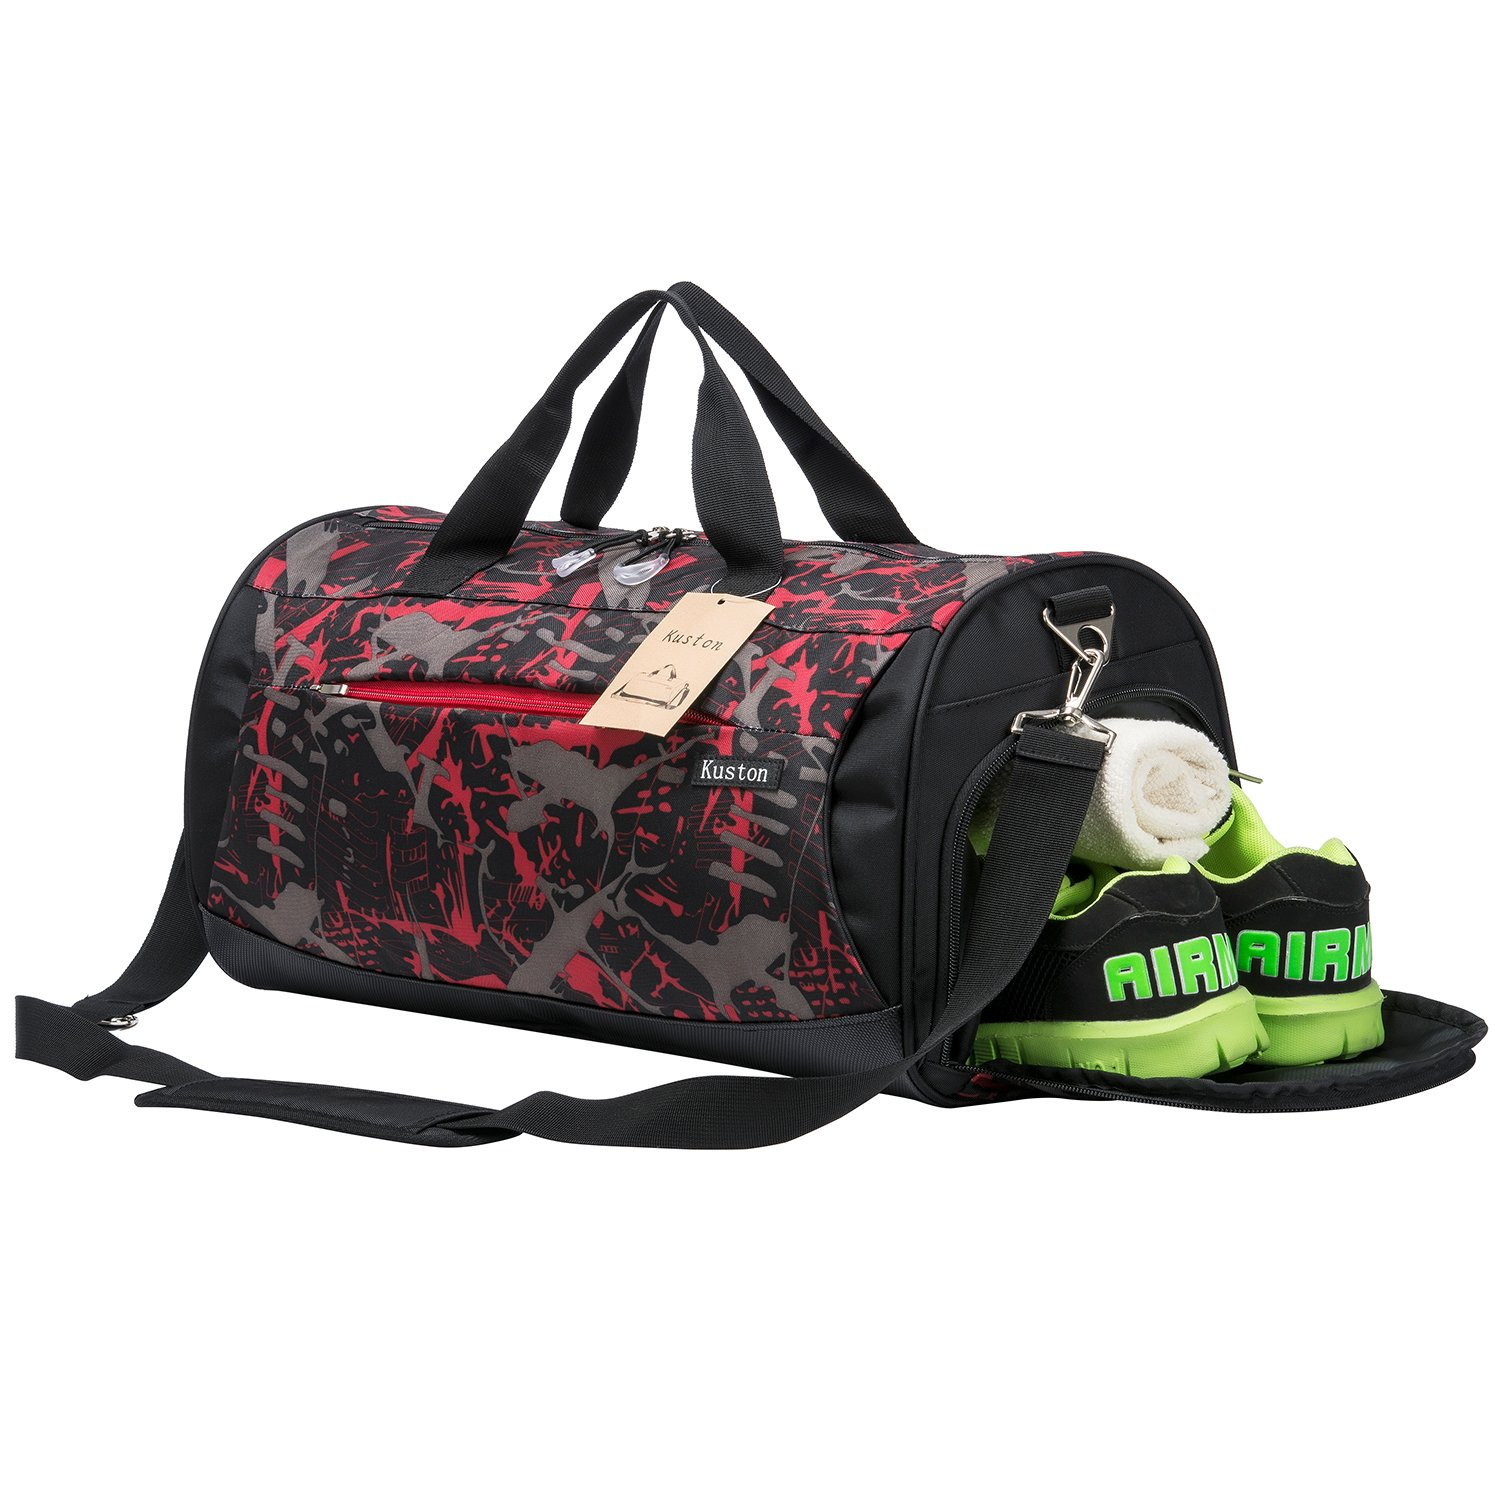 Kuston Sports Gym Bag with Shoes Compartment Travel Duffel Bag for Men and Women XMS1587